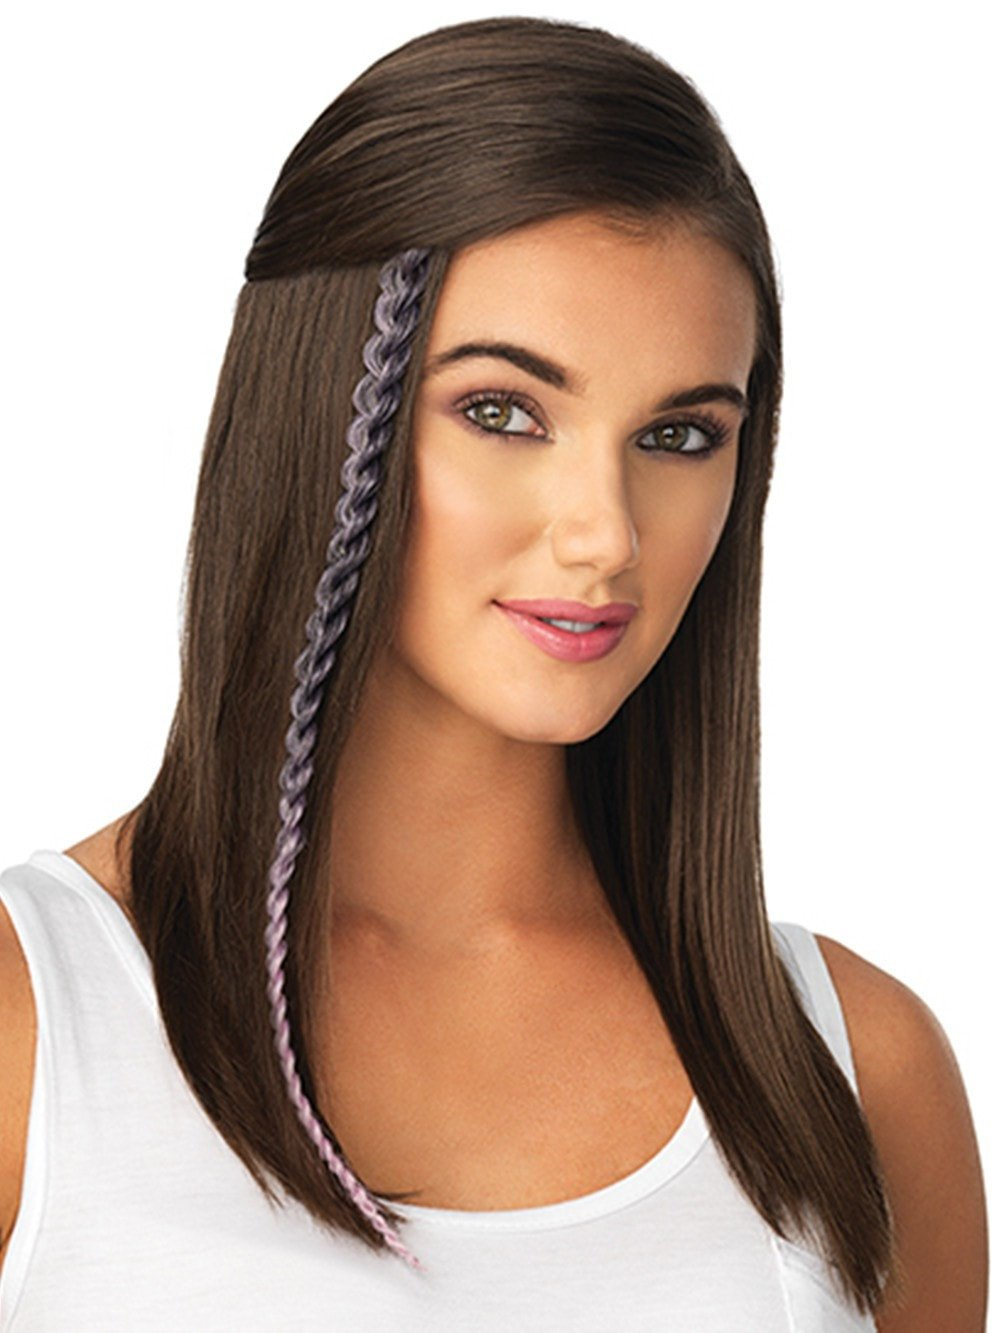 Metallic braid extension clip ins pop by hairdo wigs metallic braid extension by pop by hairdo in light purple black pmusecretfo Image collections